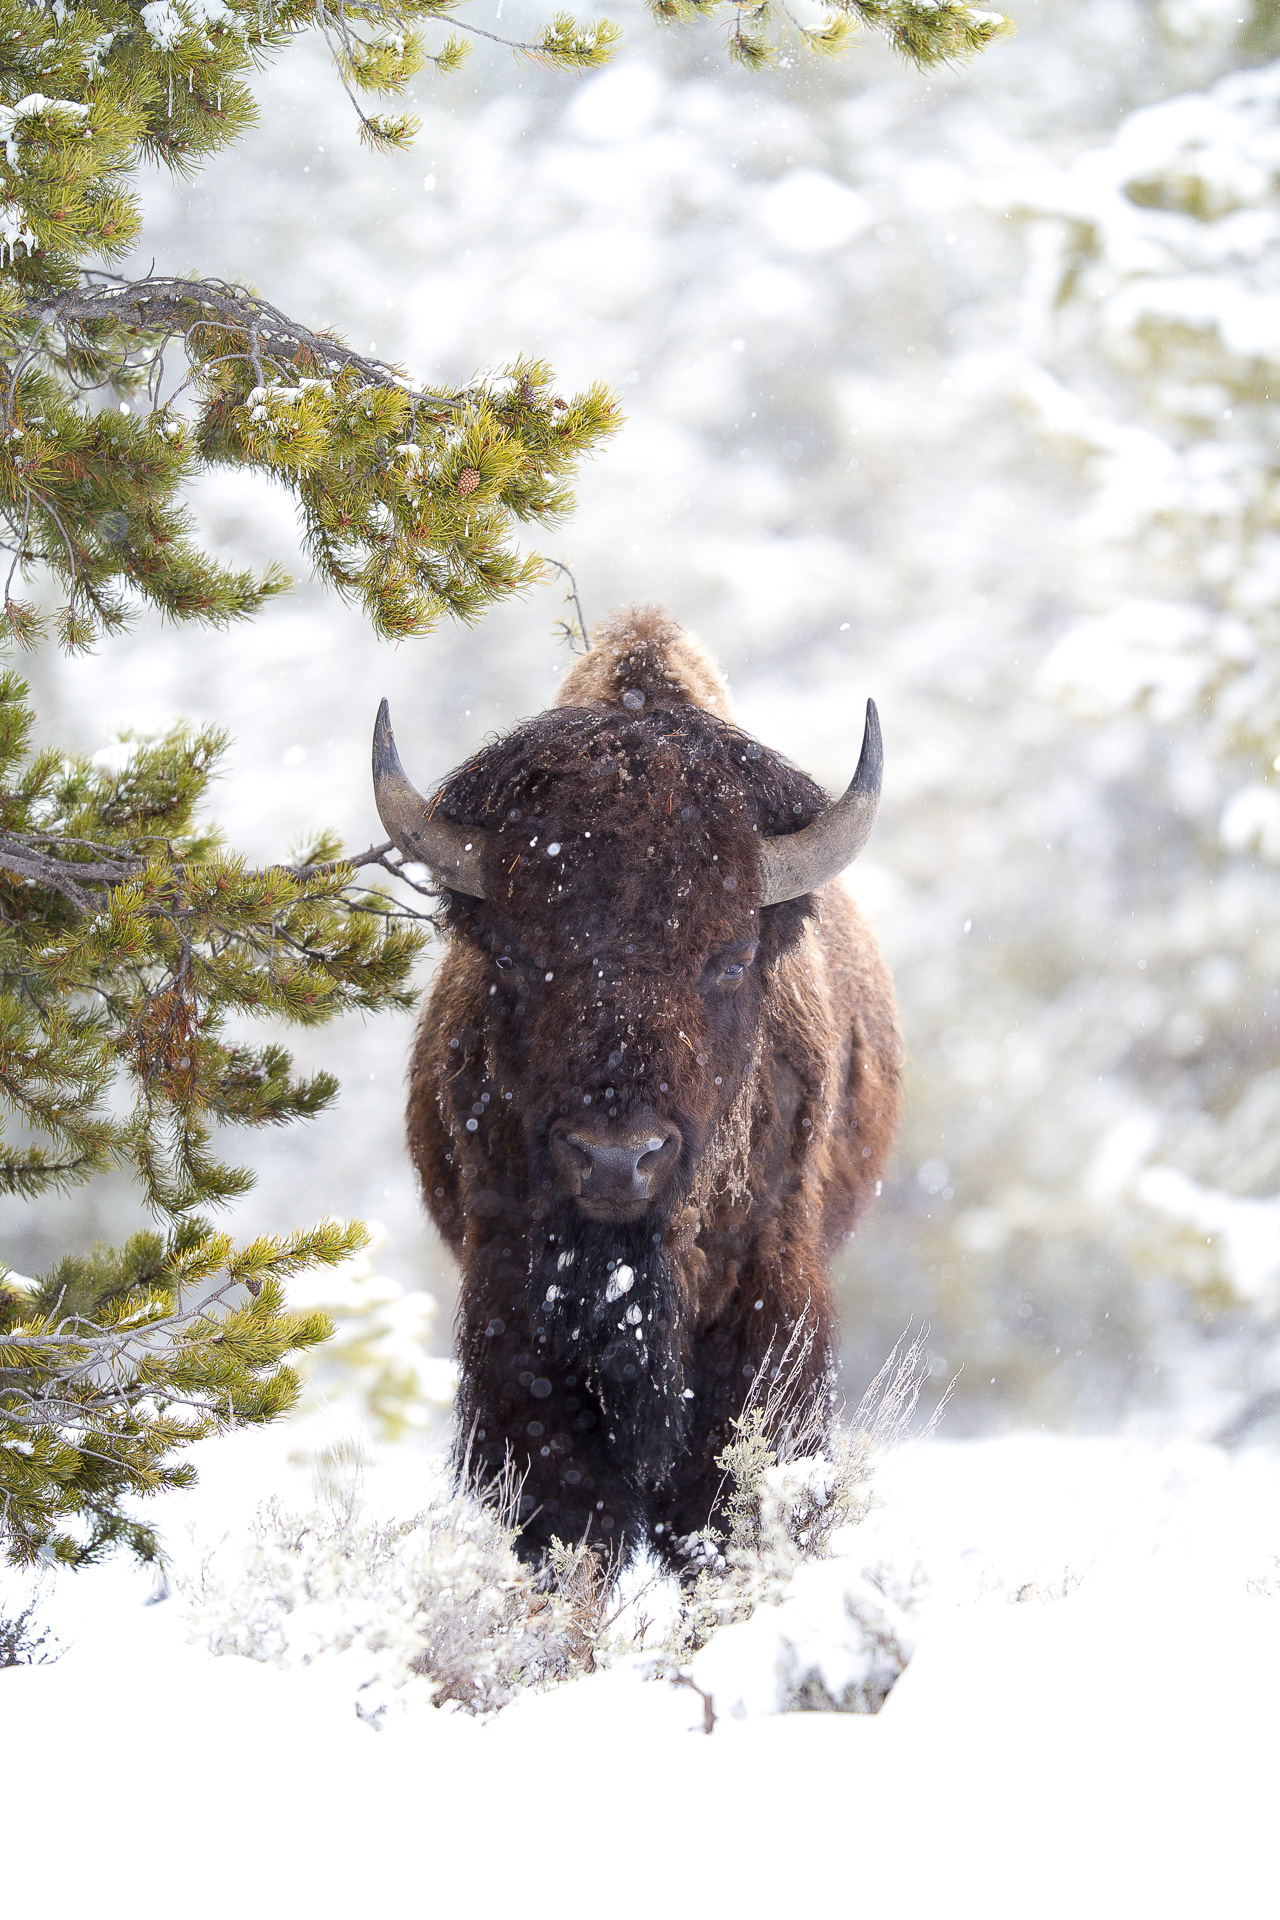 Bison head on snowy woods Canon 200mm f2 lens Yellowstone National Park WY Sparky Stensaas-0238